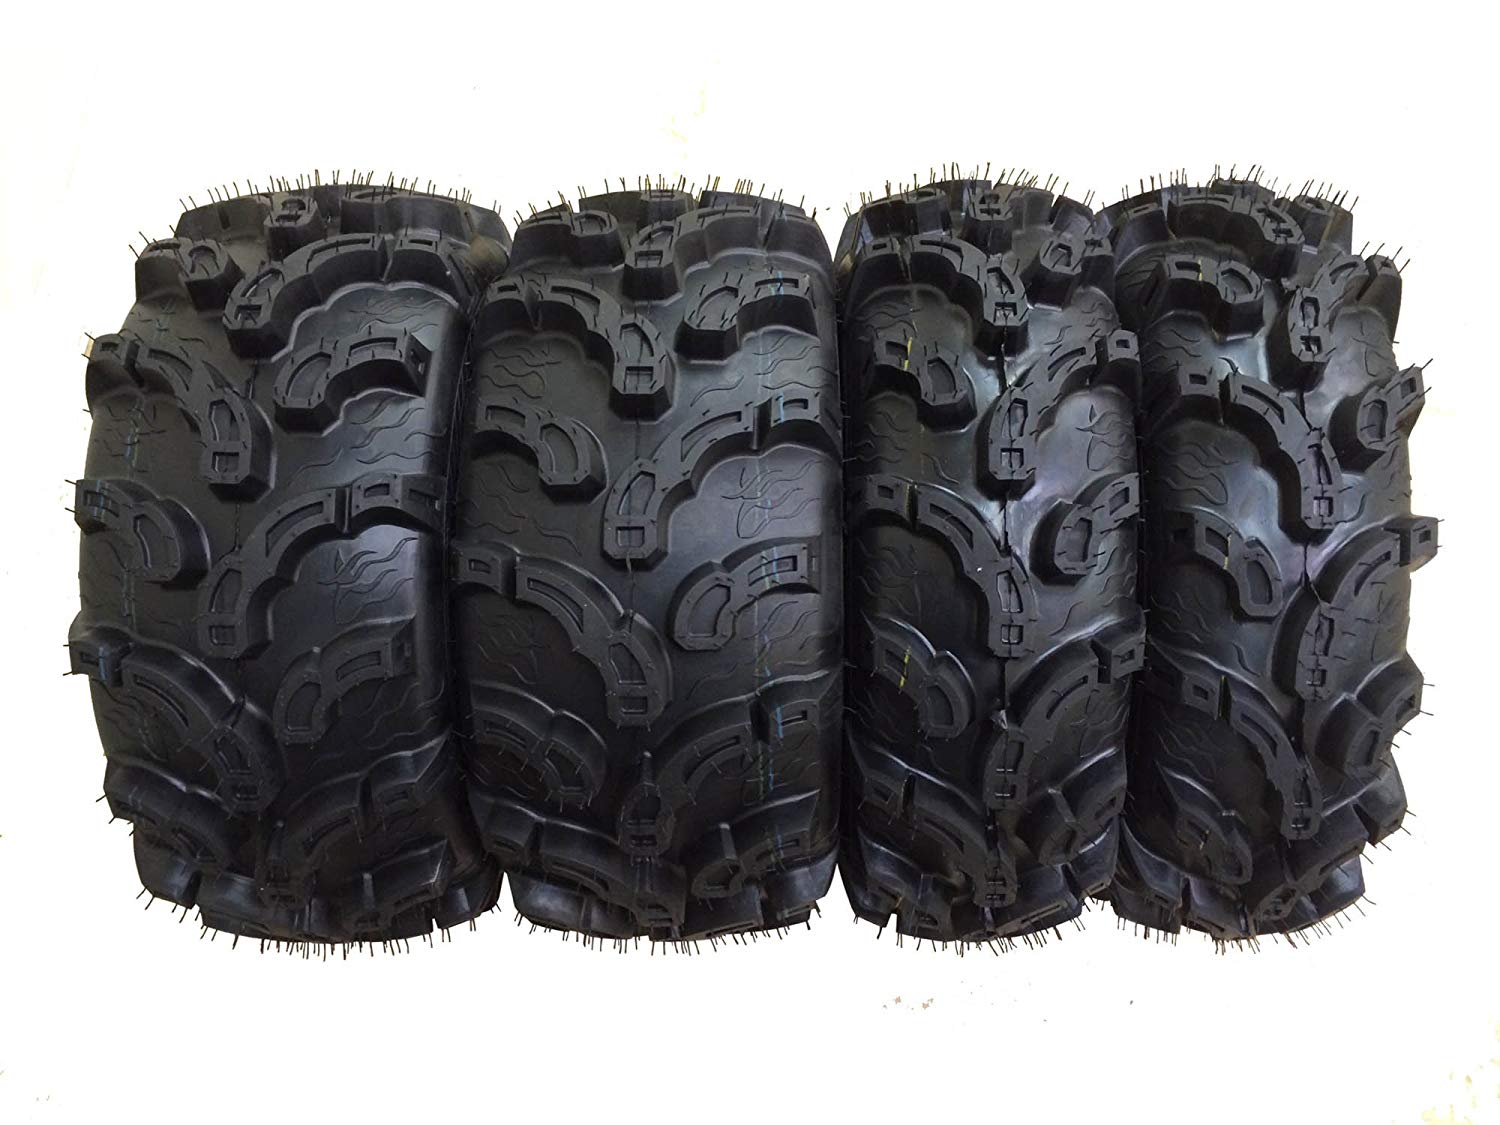 Set of 4 New Premium WANDA ATV/UTV Tires 27x9-12 Front & 27x12-12 Rear /6P Super Lug Mud